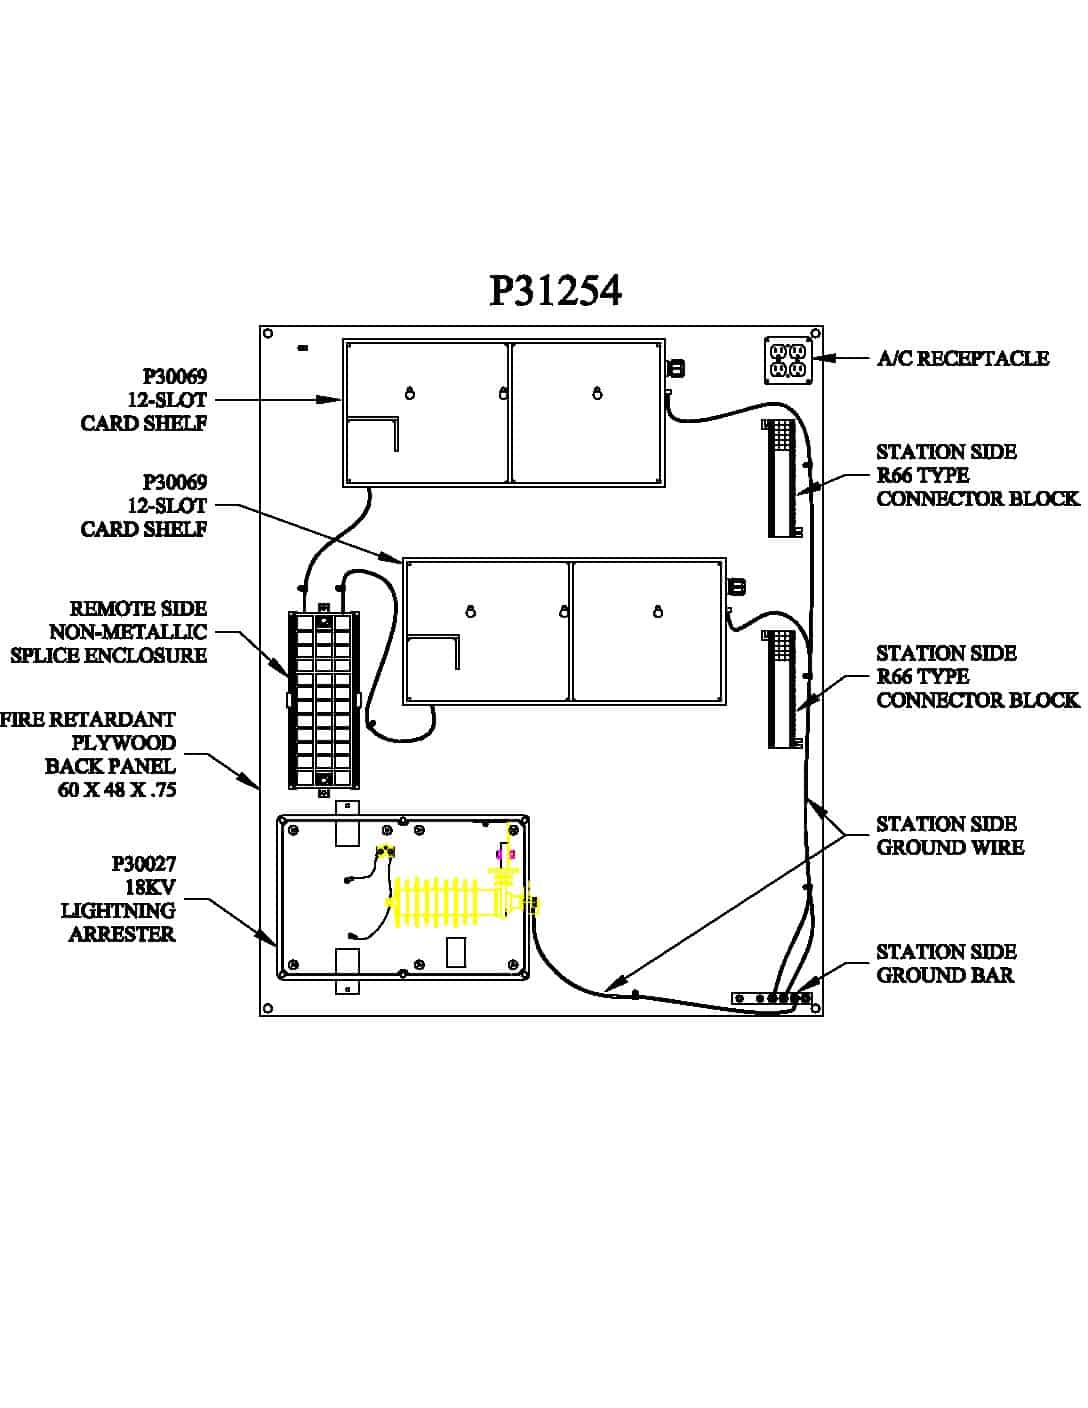 P31254 Turnkey Protection Packages – 12 slot PDF thumbnail